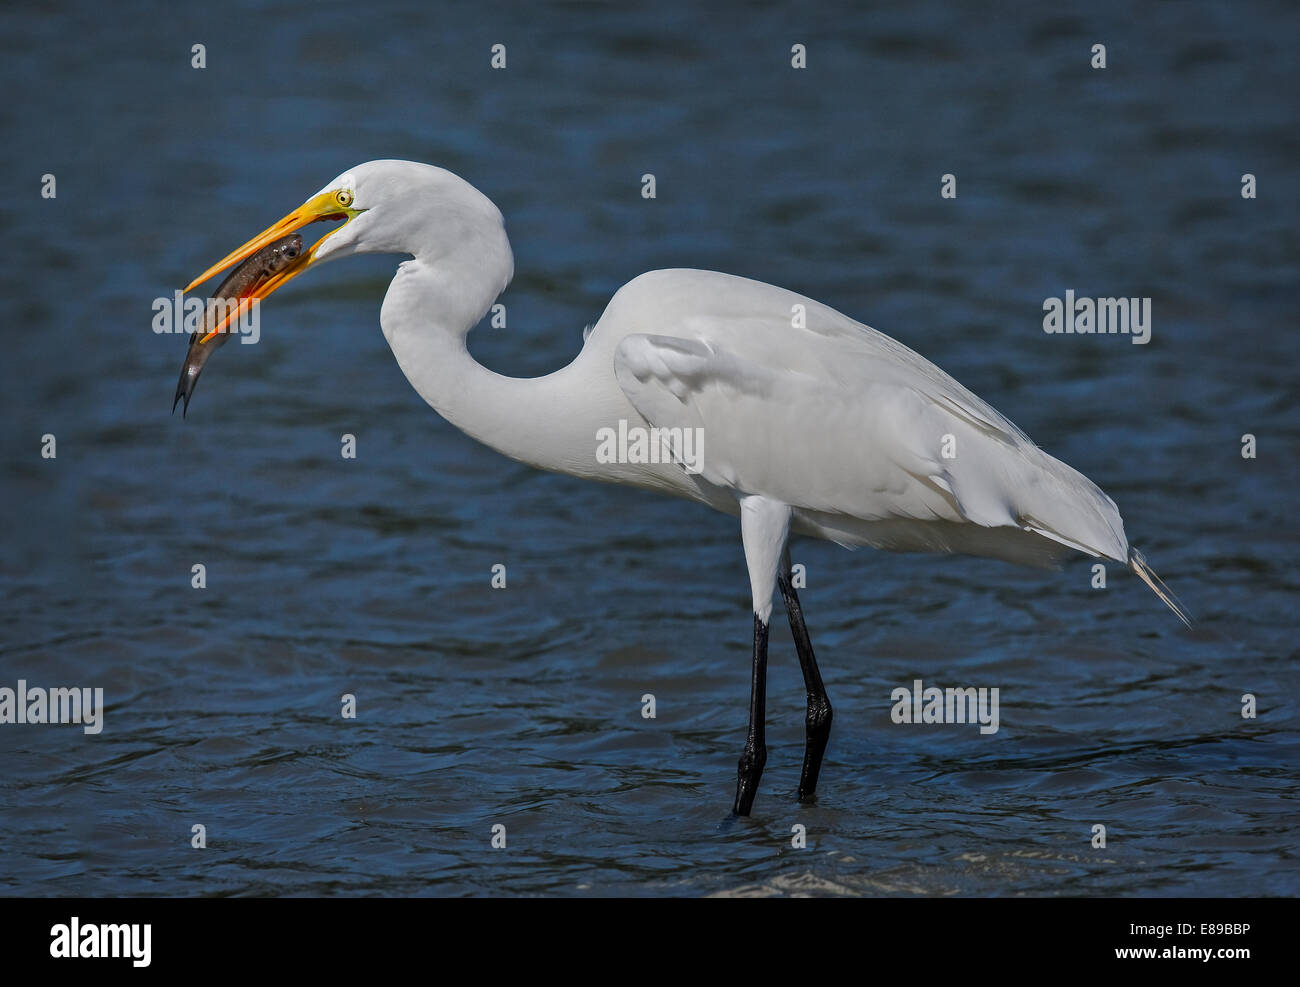 Great Egret fishes out breakfast in the early morning. - Stock Image